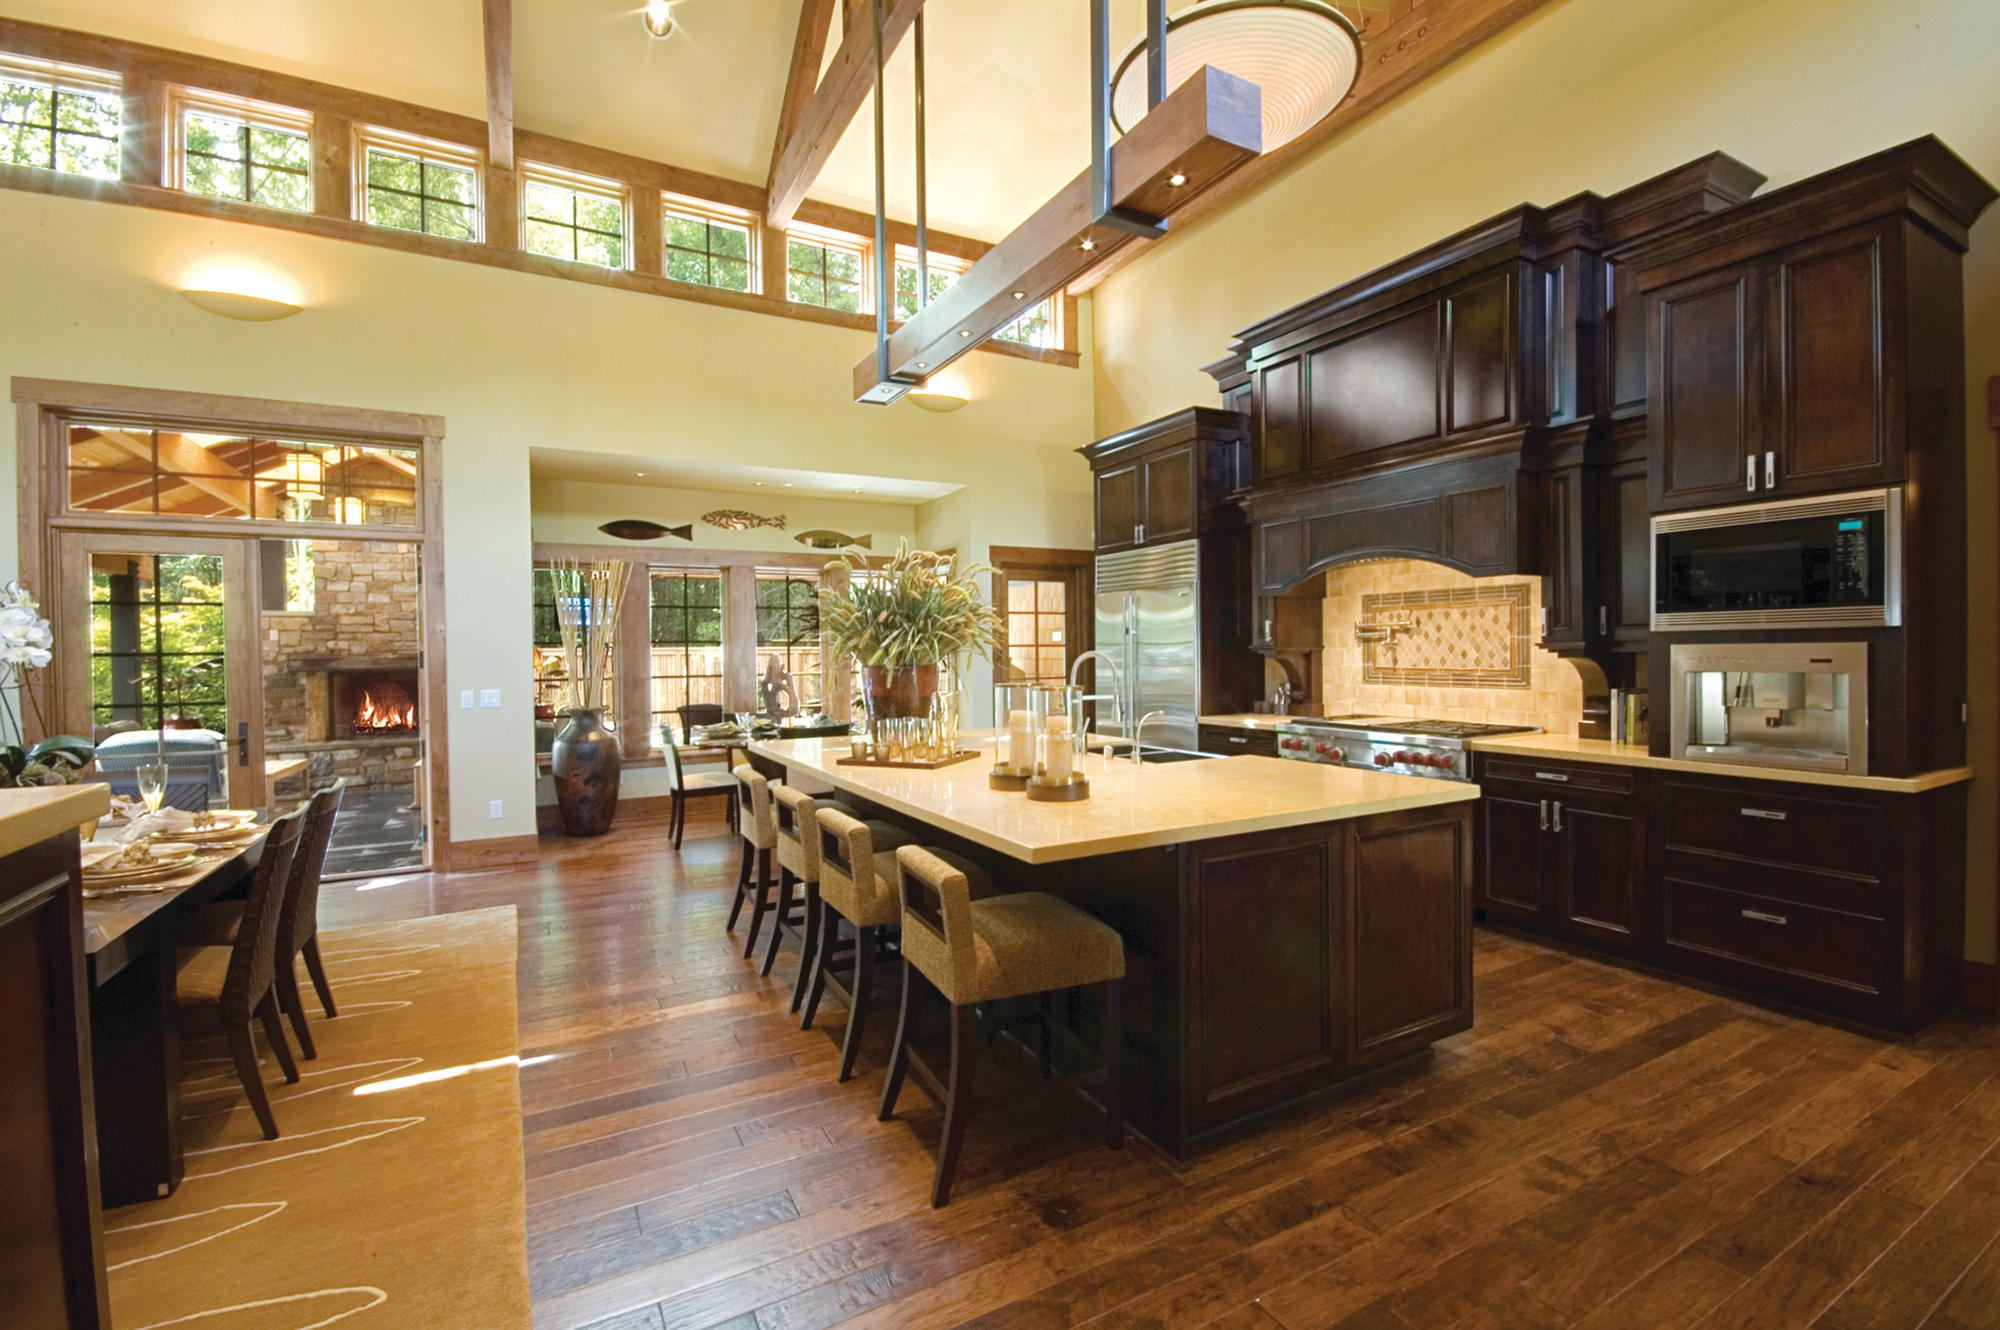 FSC Certified Cabinetry From Crystal Cabinet Works